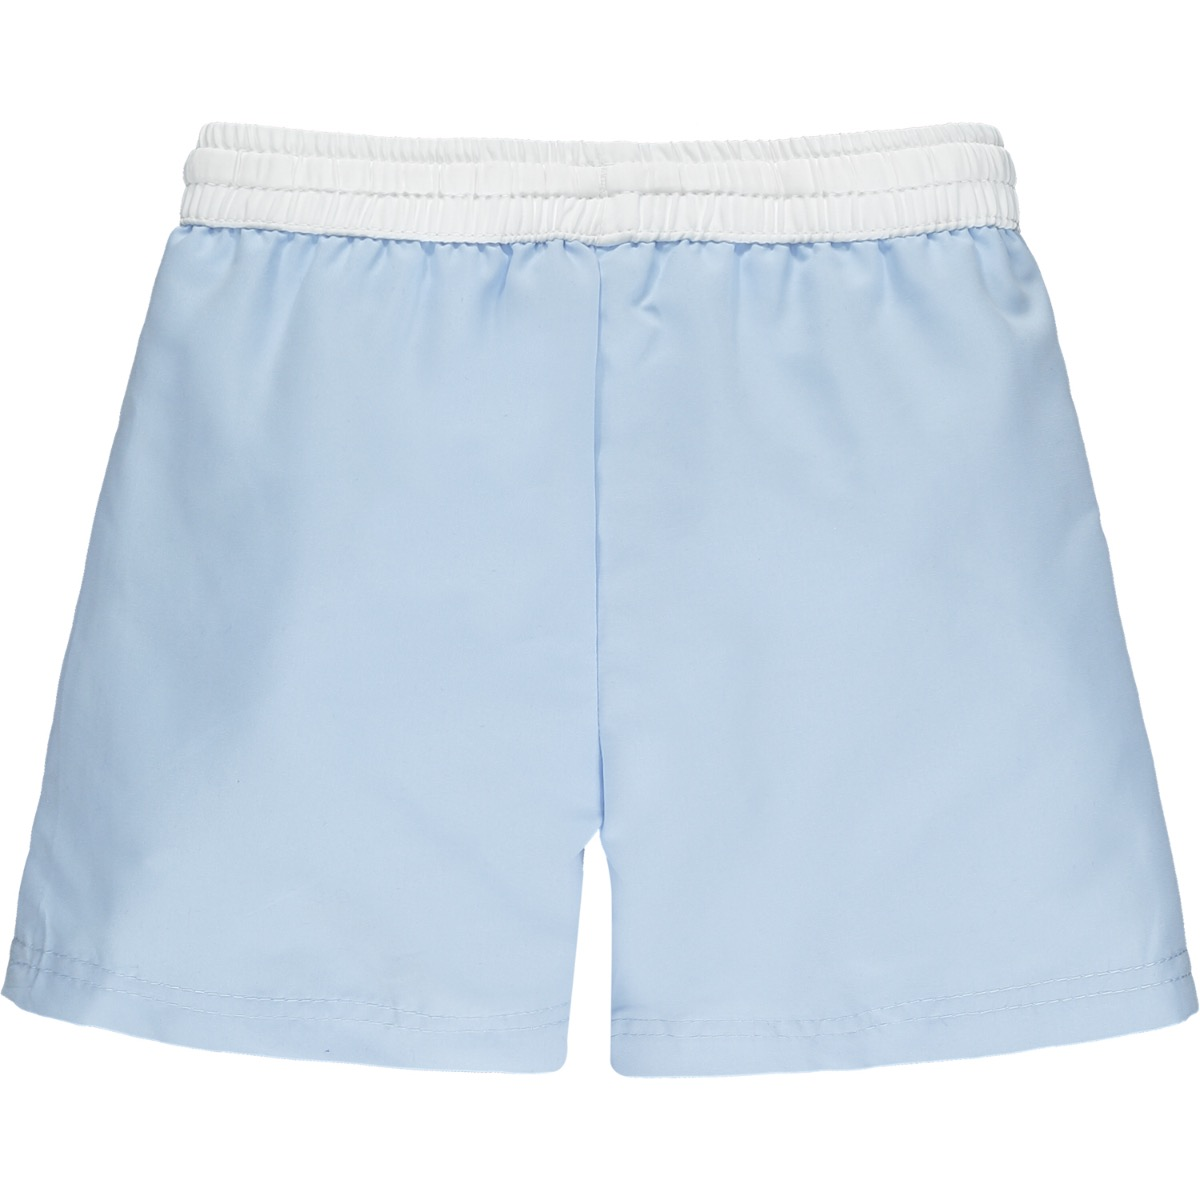 Mitch & Son Blue Braid Swimming Shorts MS21111